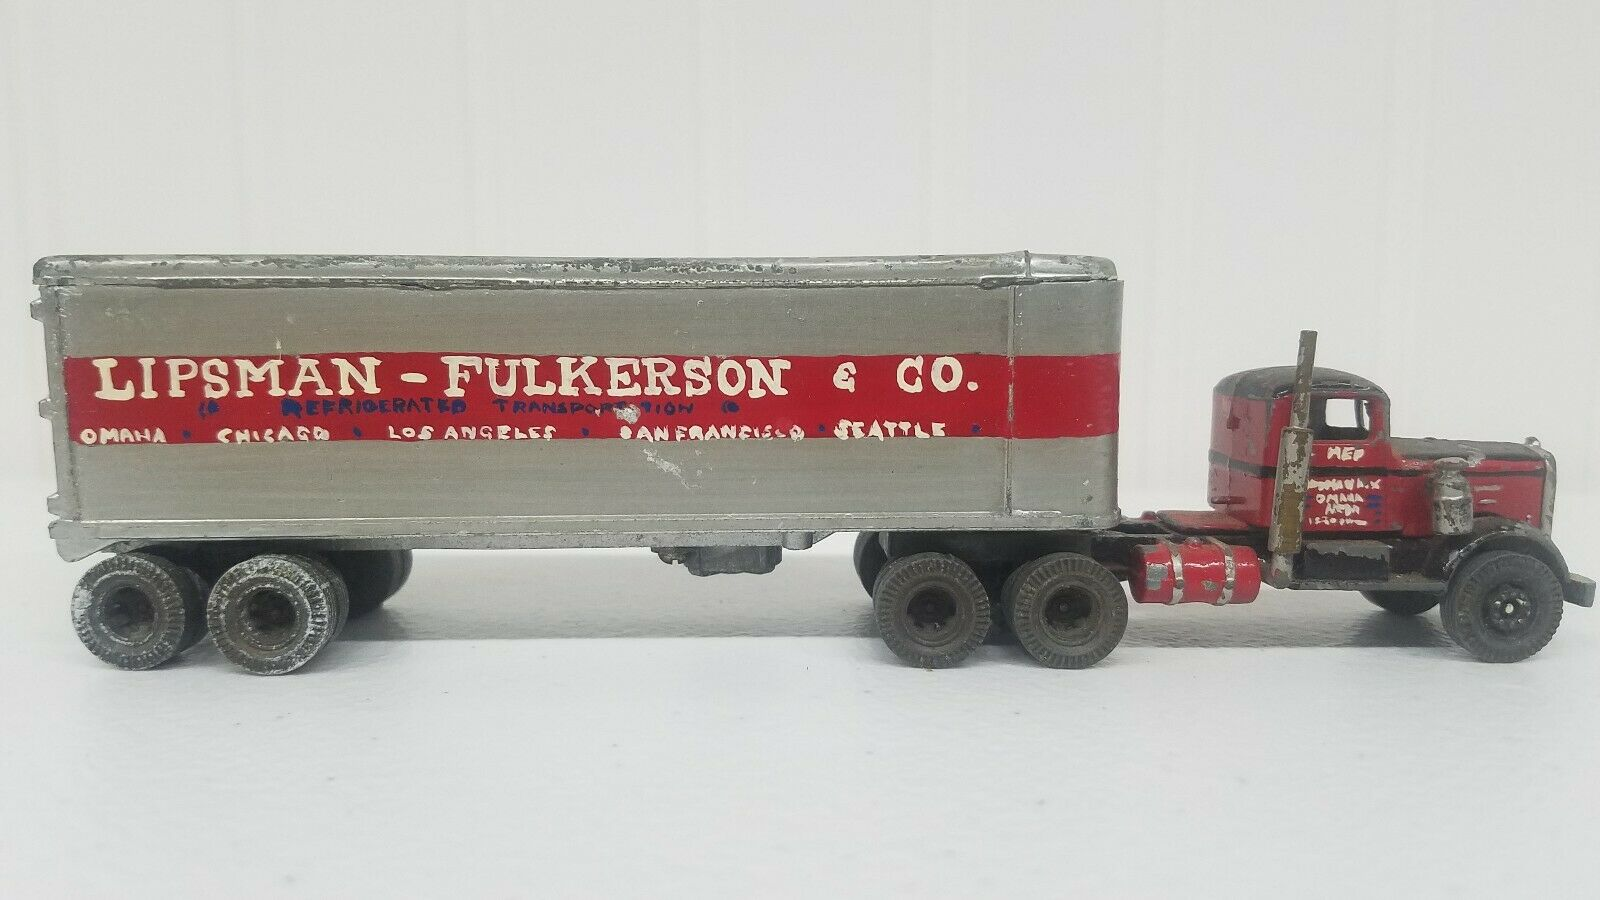 Ulrich he painted  Truck with lipsuomo & faulkerson trailer